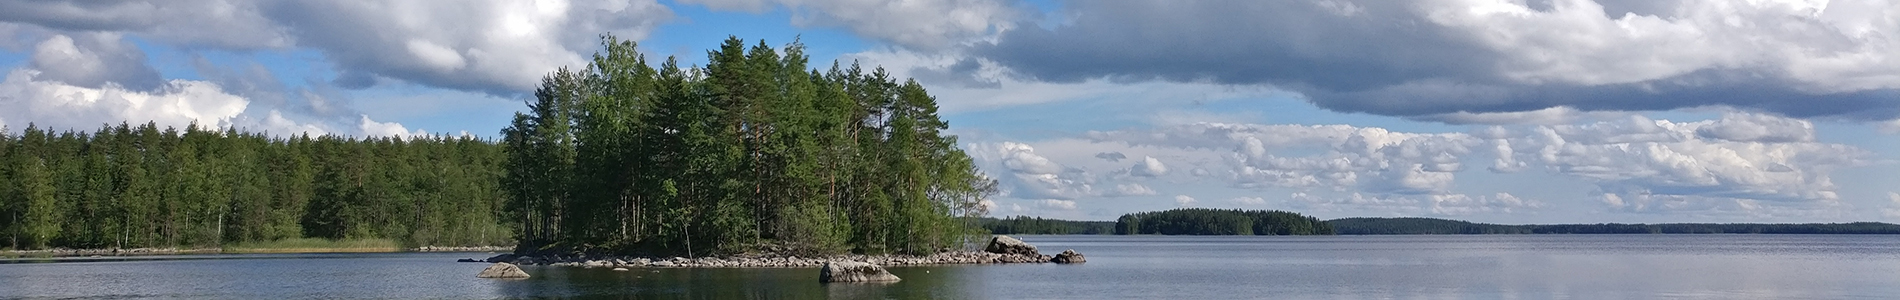 Finnish Water Restoration and Management Network